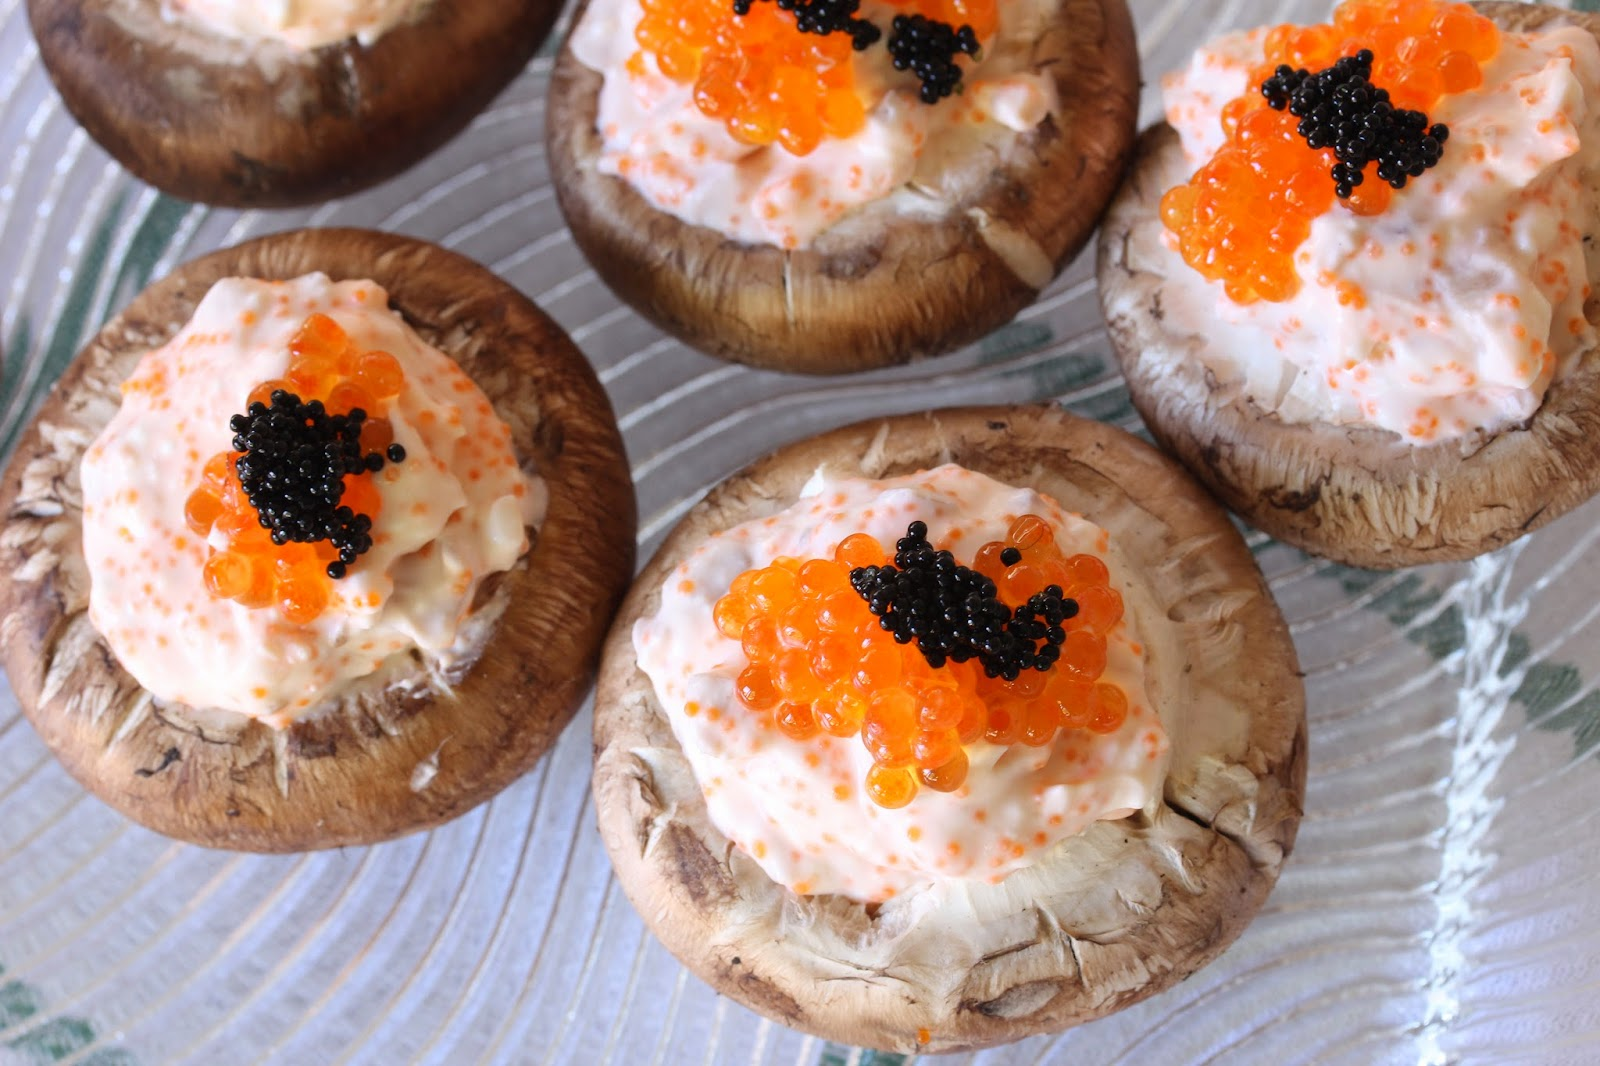 ... , To Market with San Diego Foodstuff: How to Buy Caviar on a Budget